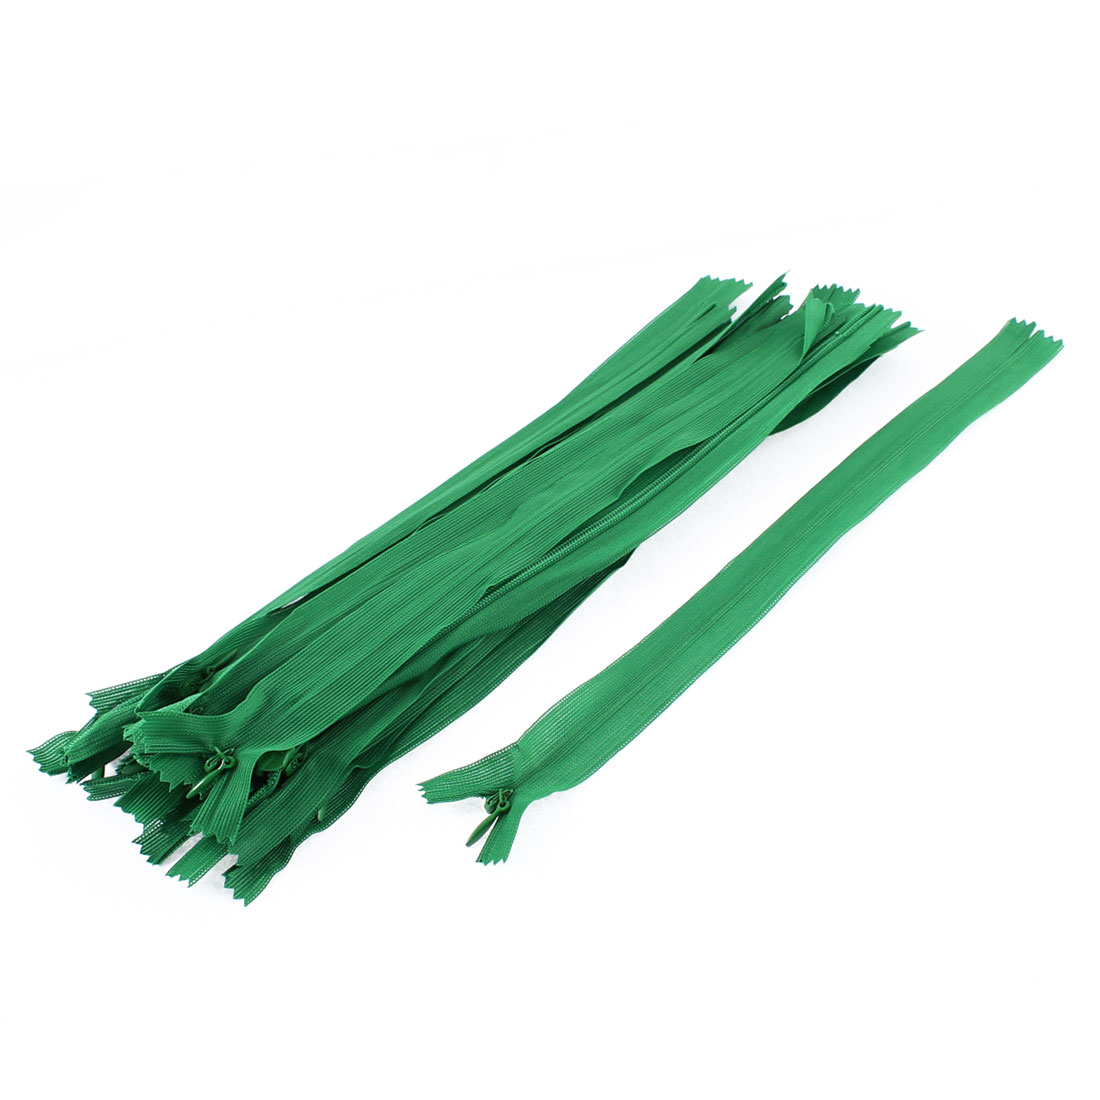 Clothes Invisible Nylon Coil Zippers Tailor Sewing Craft Tool Green 25cm 20 Pcs